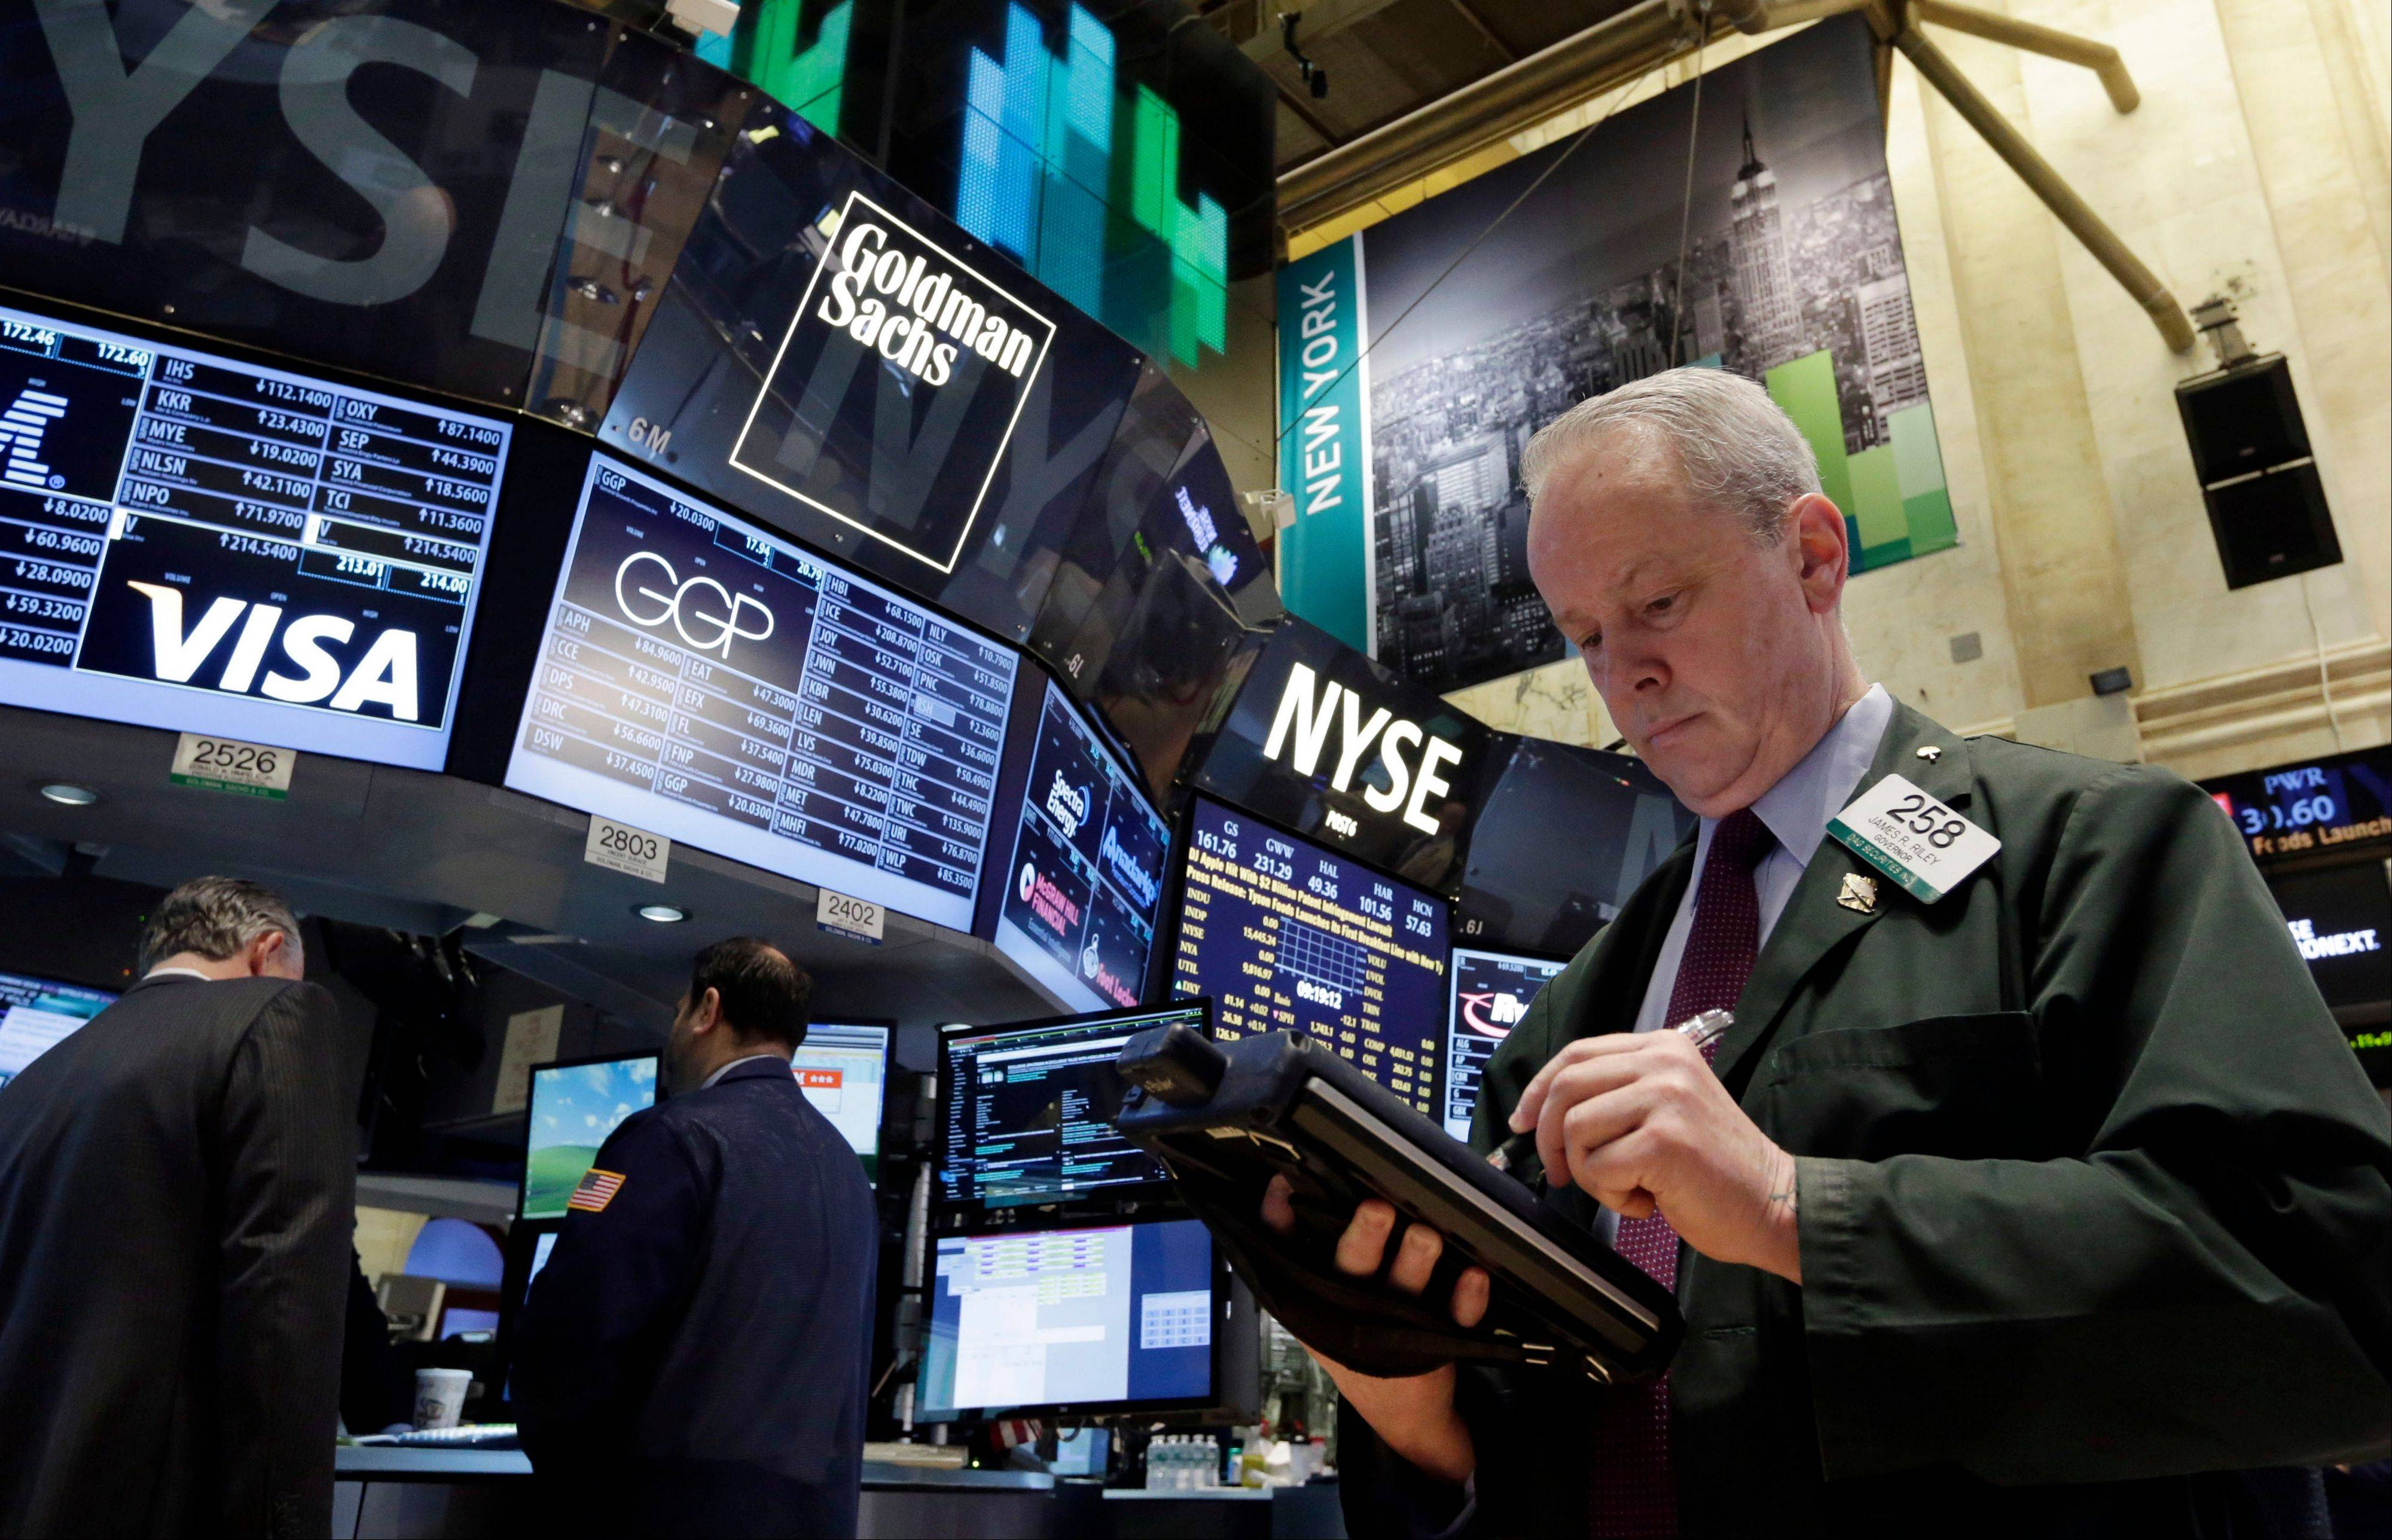 U.S. stocks fell Wednesday, sending the Standard & Poor's 500 Index to its third loss in four days, as a private report showing companies added fewer jobs than forecast overshadowed acceleration in service industries.